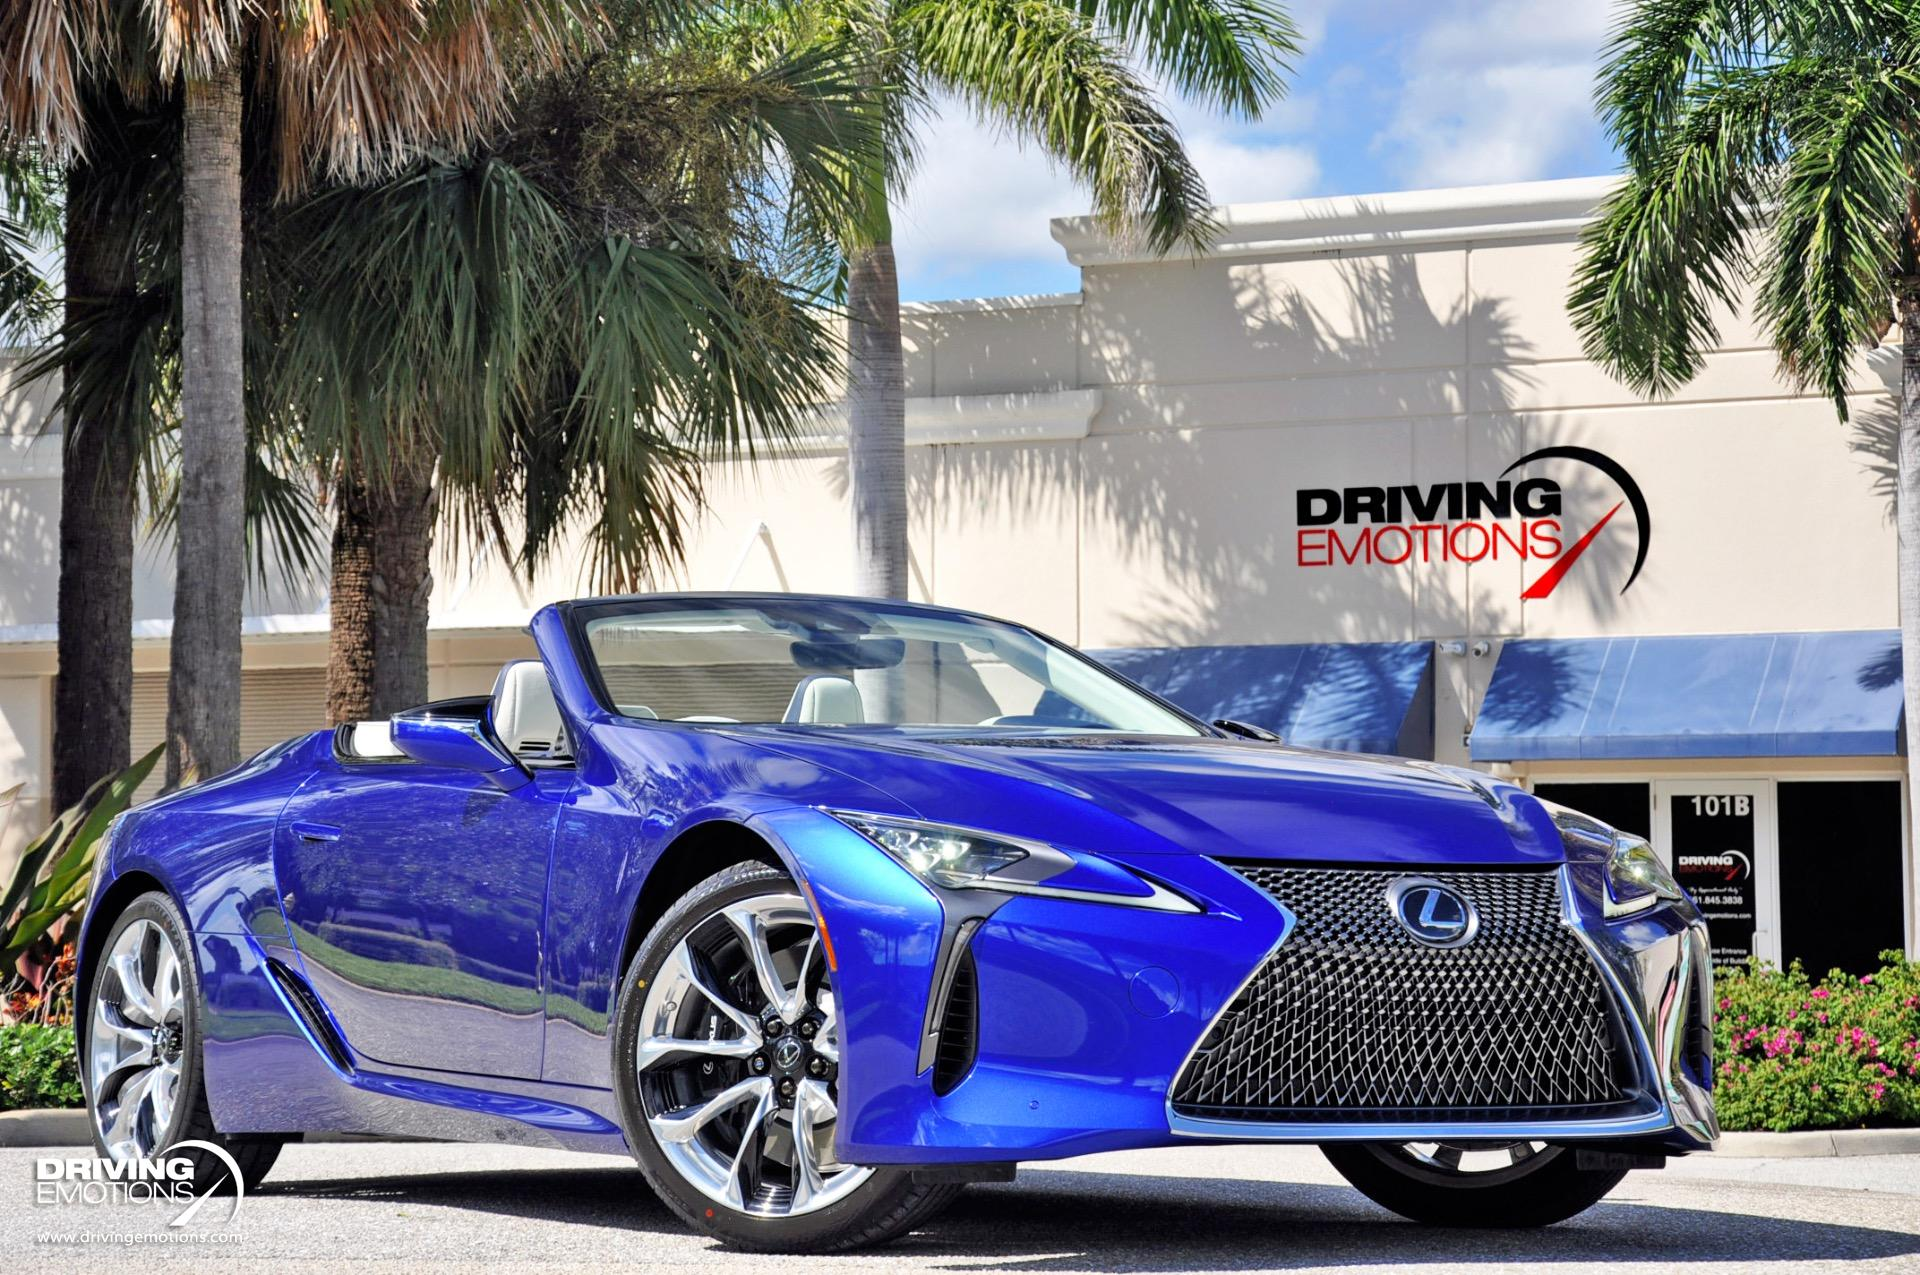 Used 2021 Lexus LC 500 Convertible Inspiration Series! Number 86 of 100 Built! RARE!! | Lake Park, FL